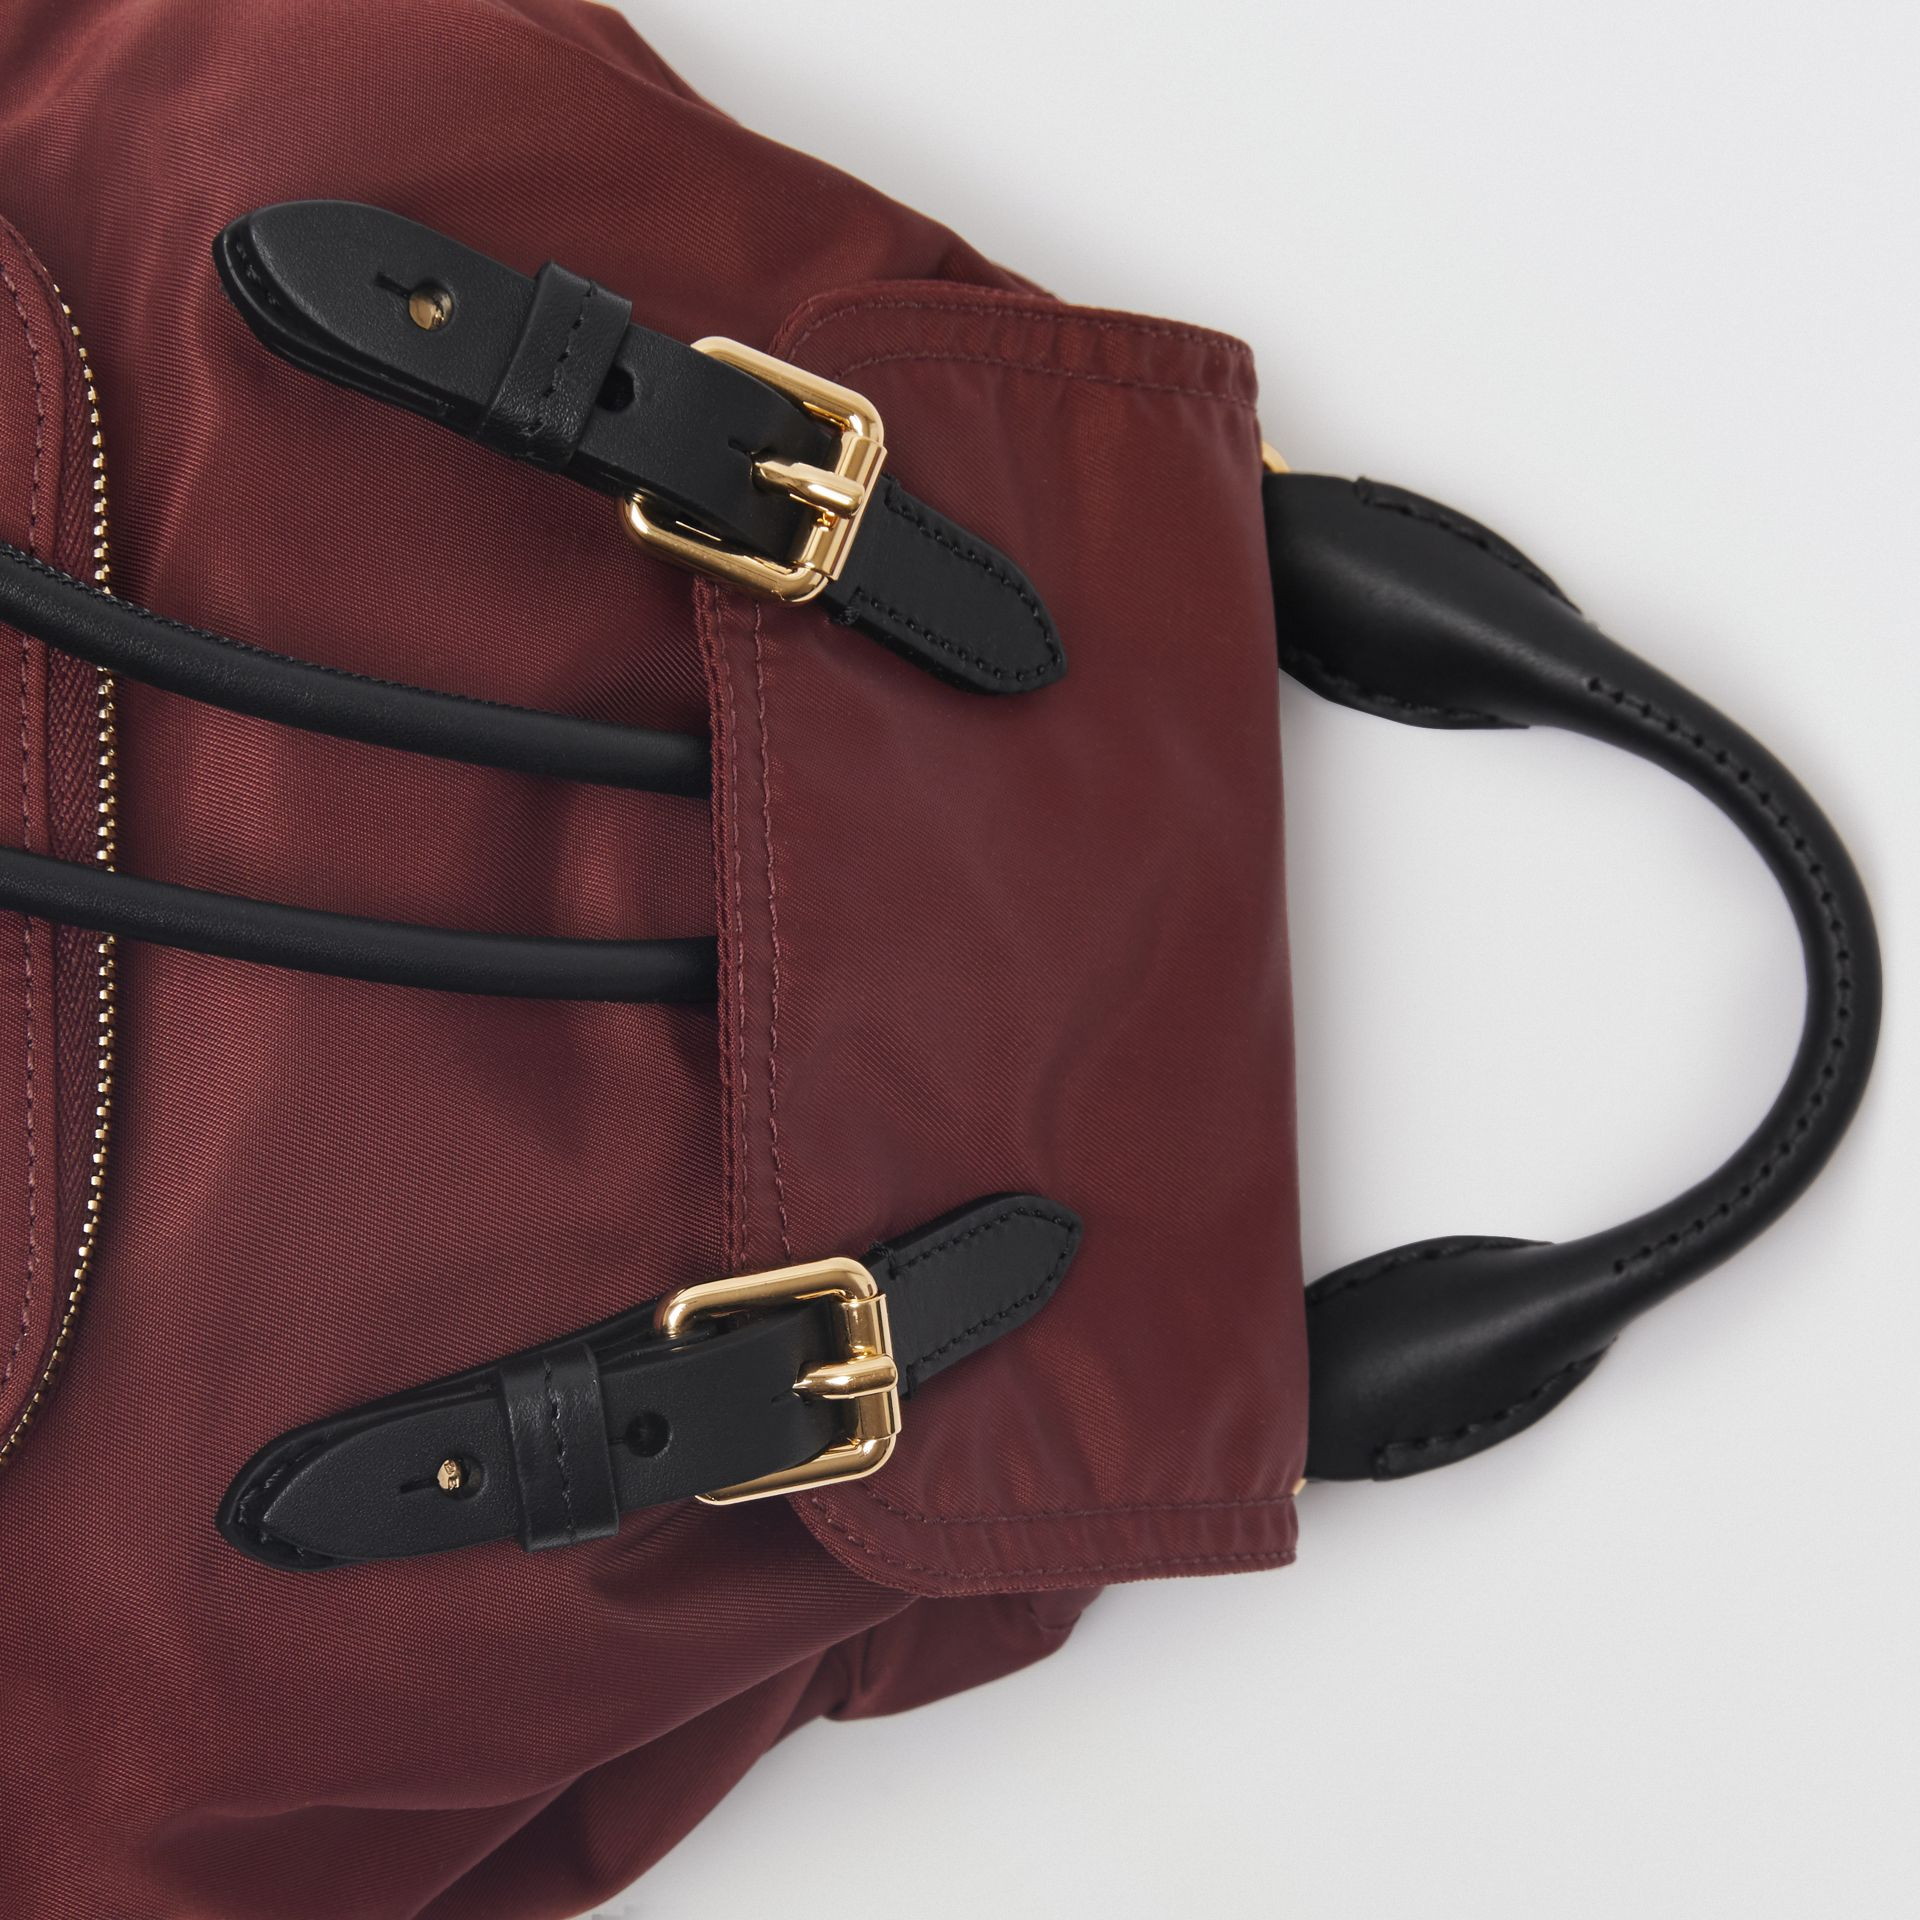 The Small Crossbody Rucksack in Nylon in Burgundy Red - Women | Burberry Hong Kong - gallery image 1